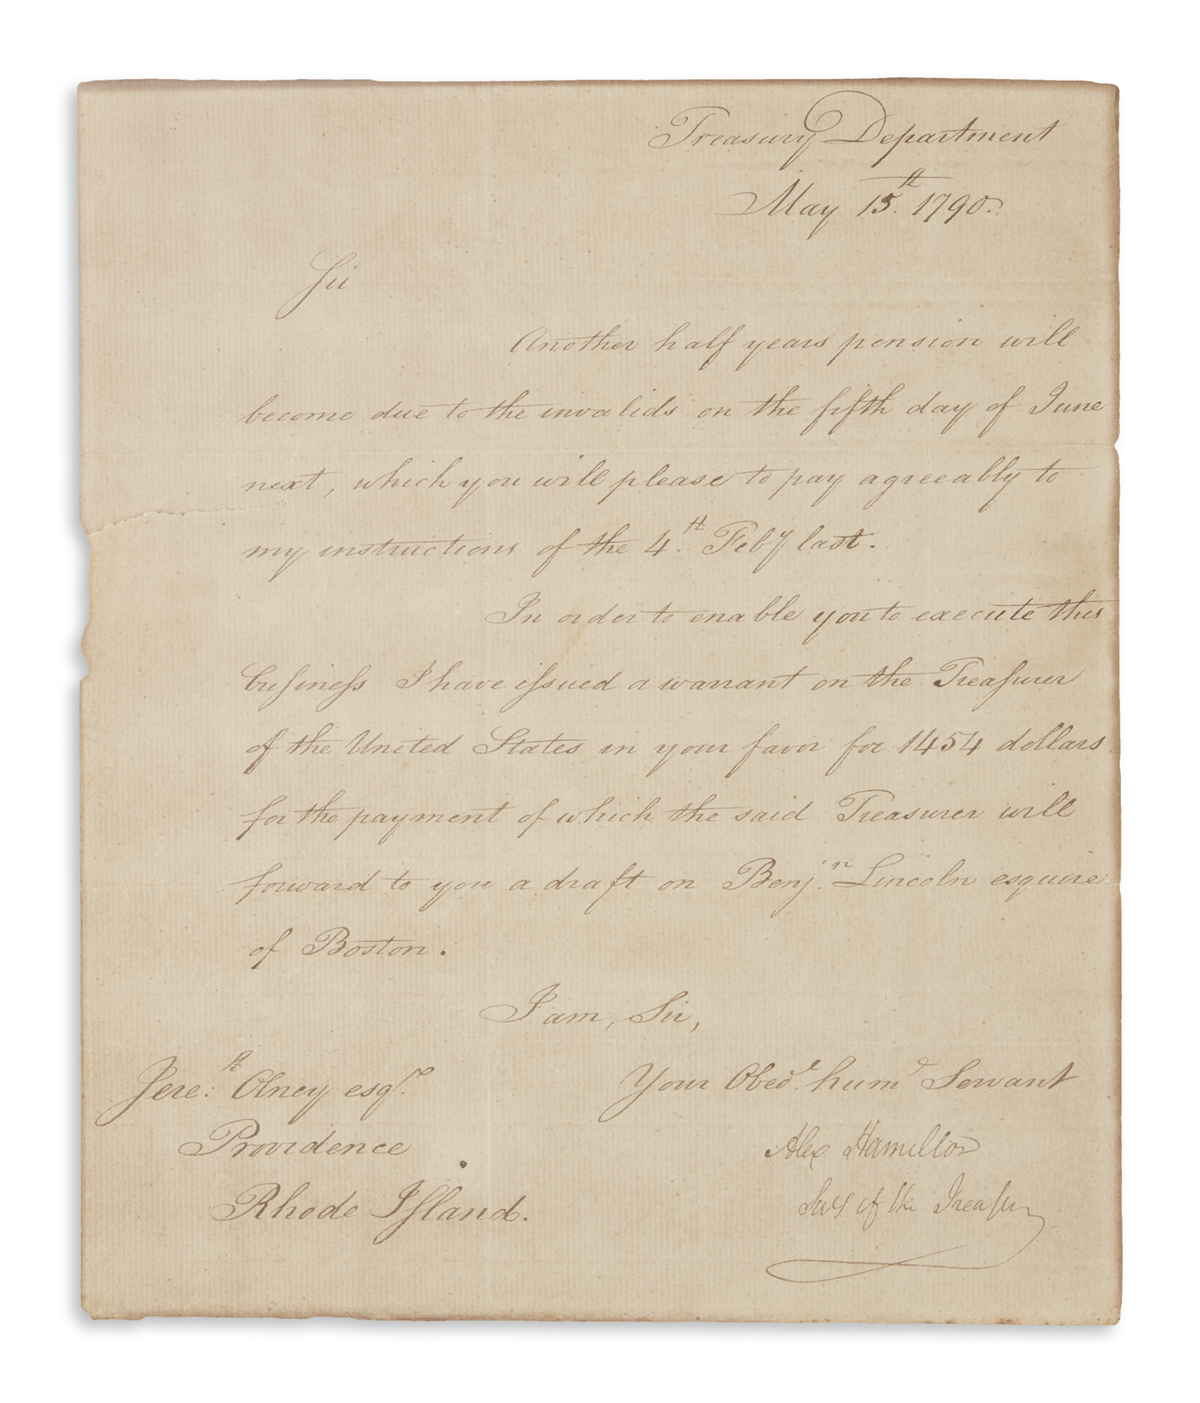 HAMILTON, ALEXANDER. Letter Signed, twice (Alex Hamilton / Secty of the Treasury and AHamilton on address panel), to Customs Colle